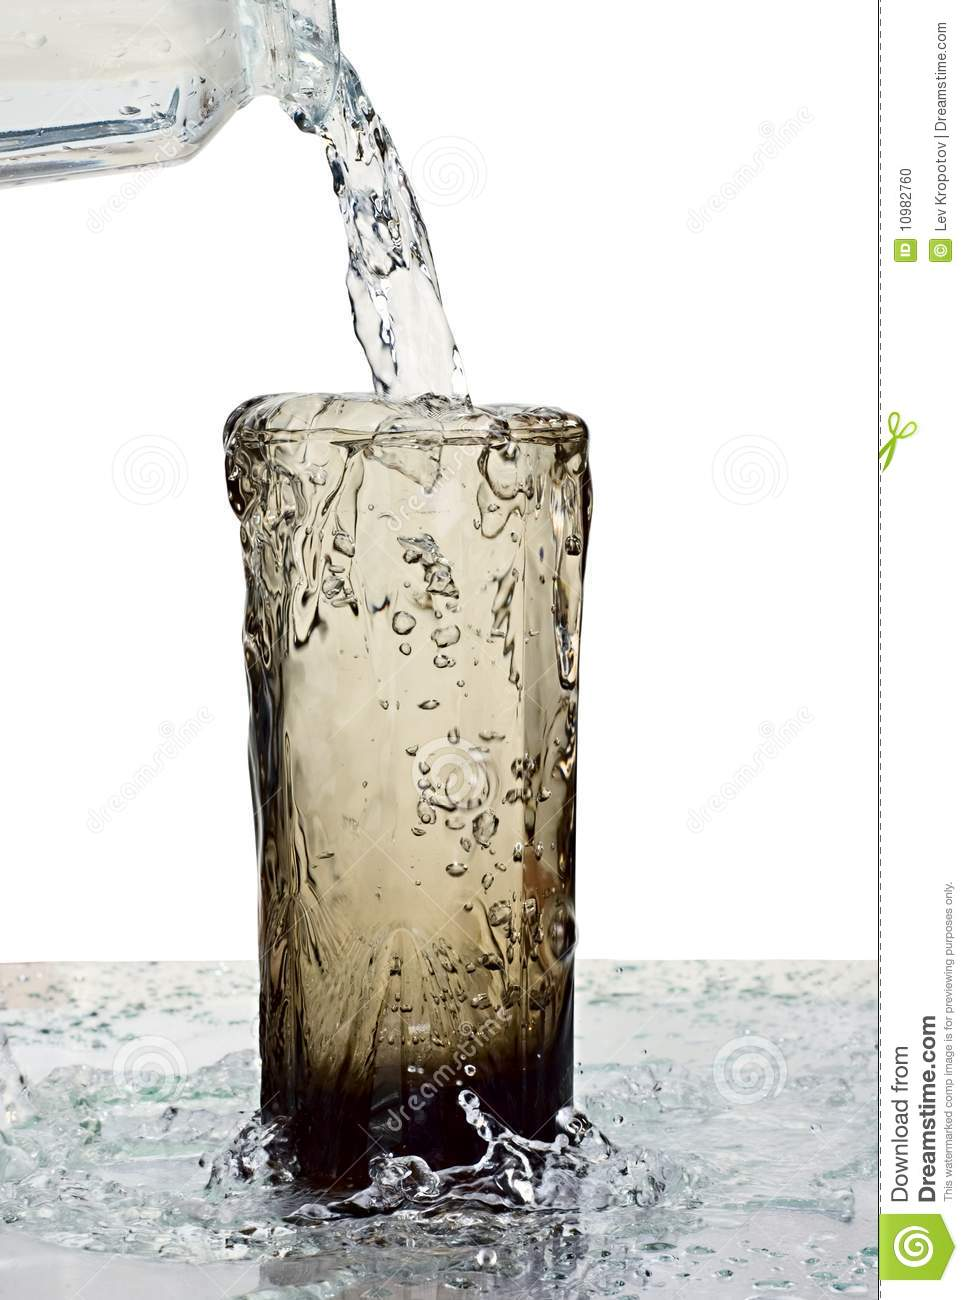 Glass of a water with overflow on white background.